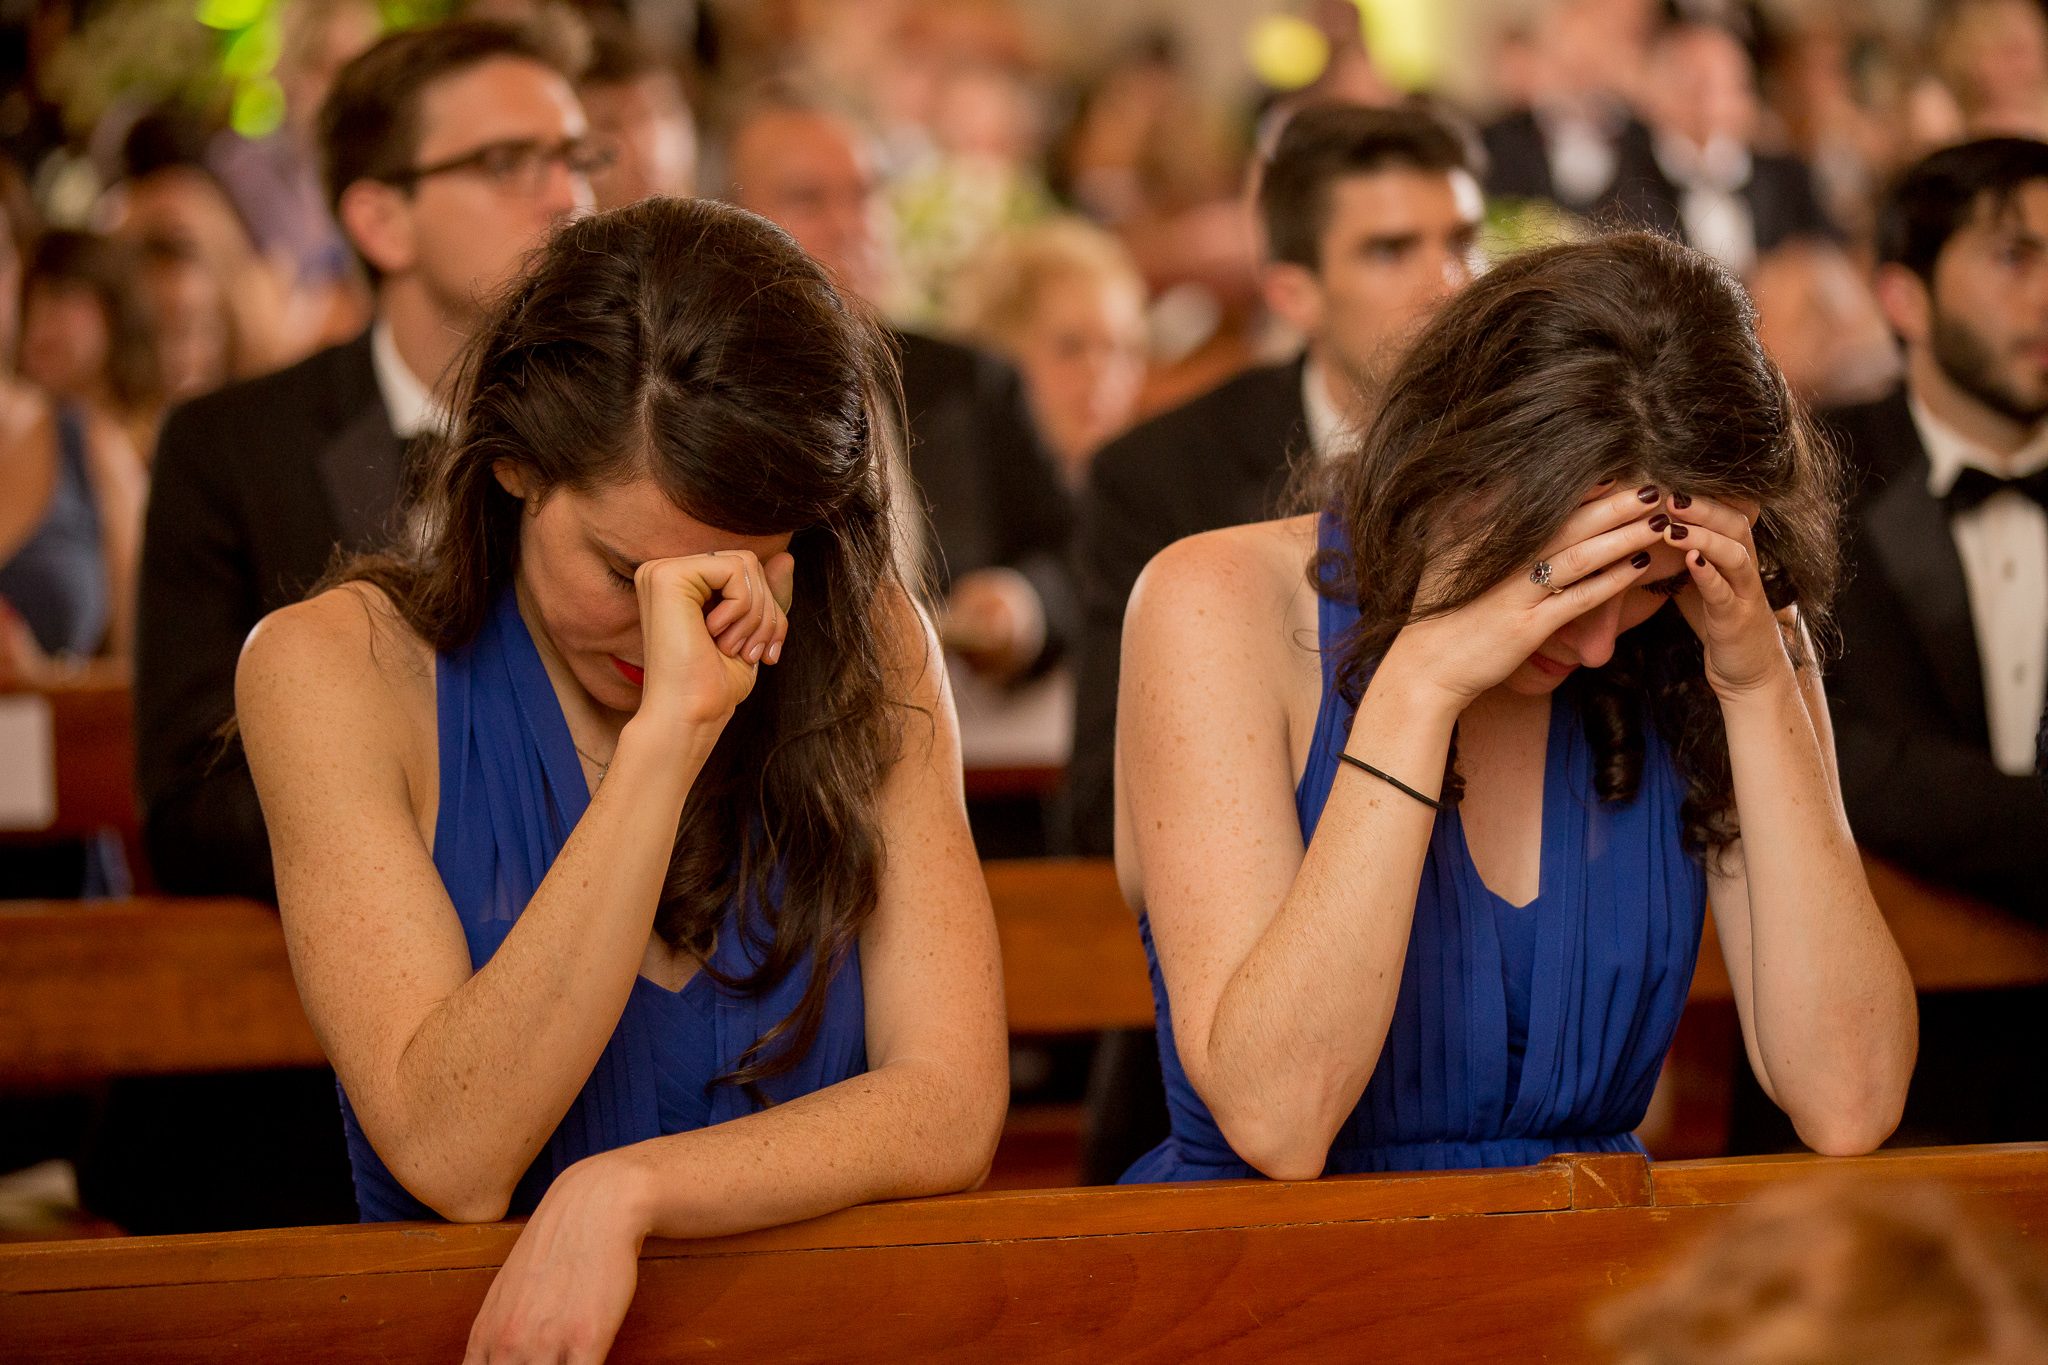 My sister and me, praying during our brother's wedding in 2015. This was a particularly difficult moment in my waiting season as a single woman, which I think comes through in my posture and facial expression.  Photo by  Yorch Sans Fotografia.